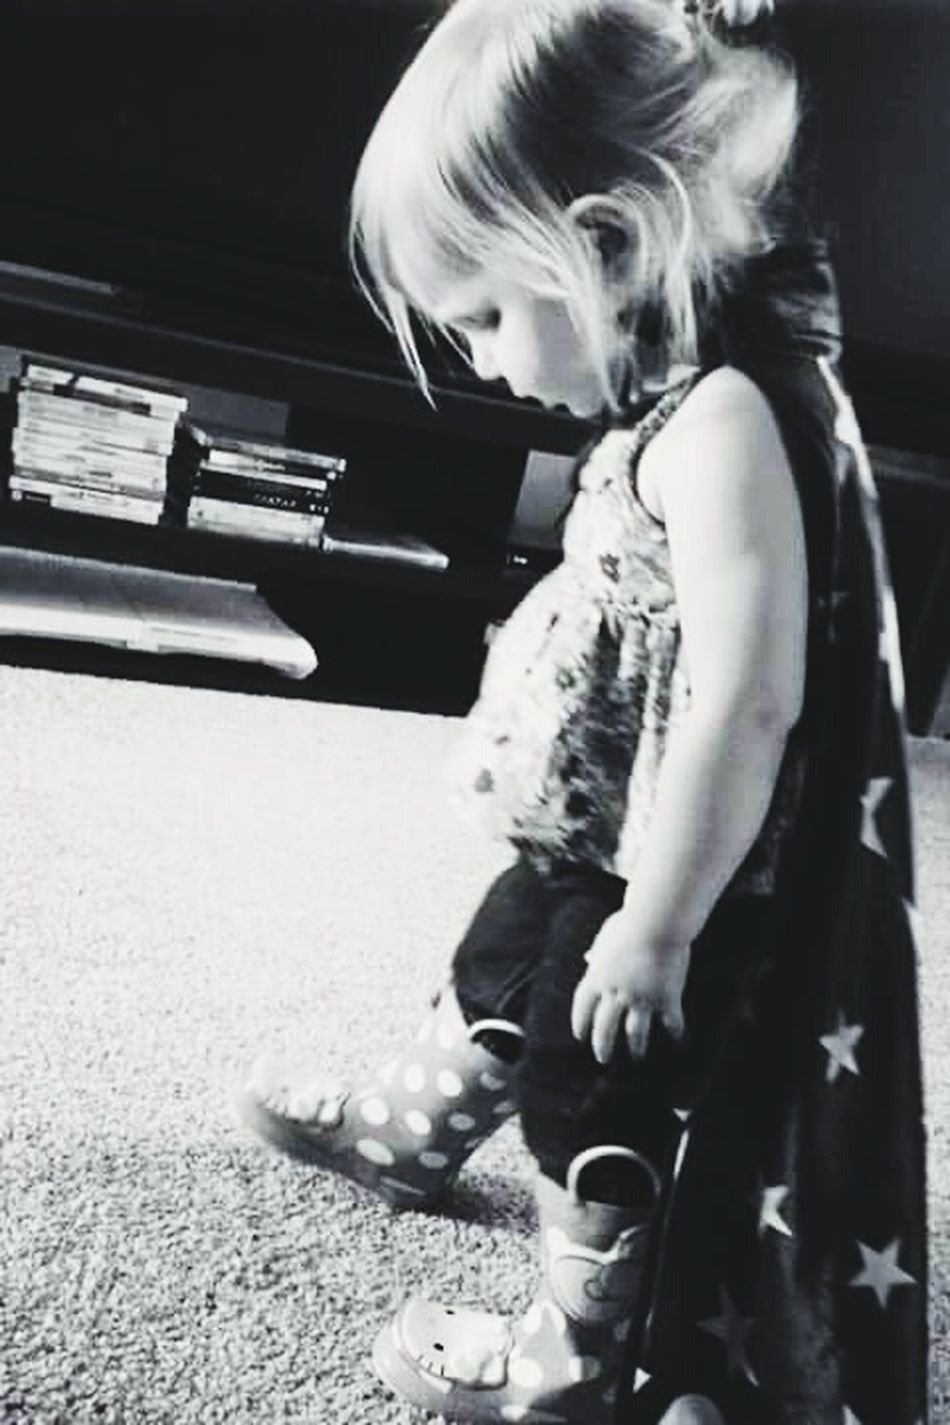 Blackandwhite Whiteandblack Unconditional Love The Photojournalist - 2016 EyeEm Awards Love Photo Of The Day Watch For Children Check This Out Lost In Thought... Award Winning Photos Gods Creation First Eyeem Photo Proud Grandmother Lost In Play My Girl Sweet♡ Awesomeness Willamette Valley I TookThis Picture!!! Funny Kid Magic